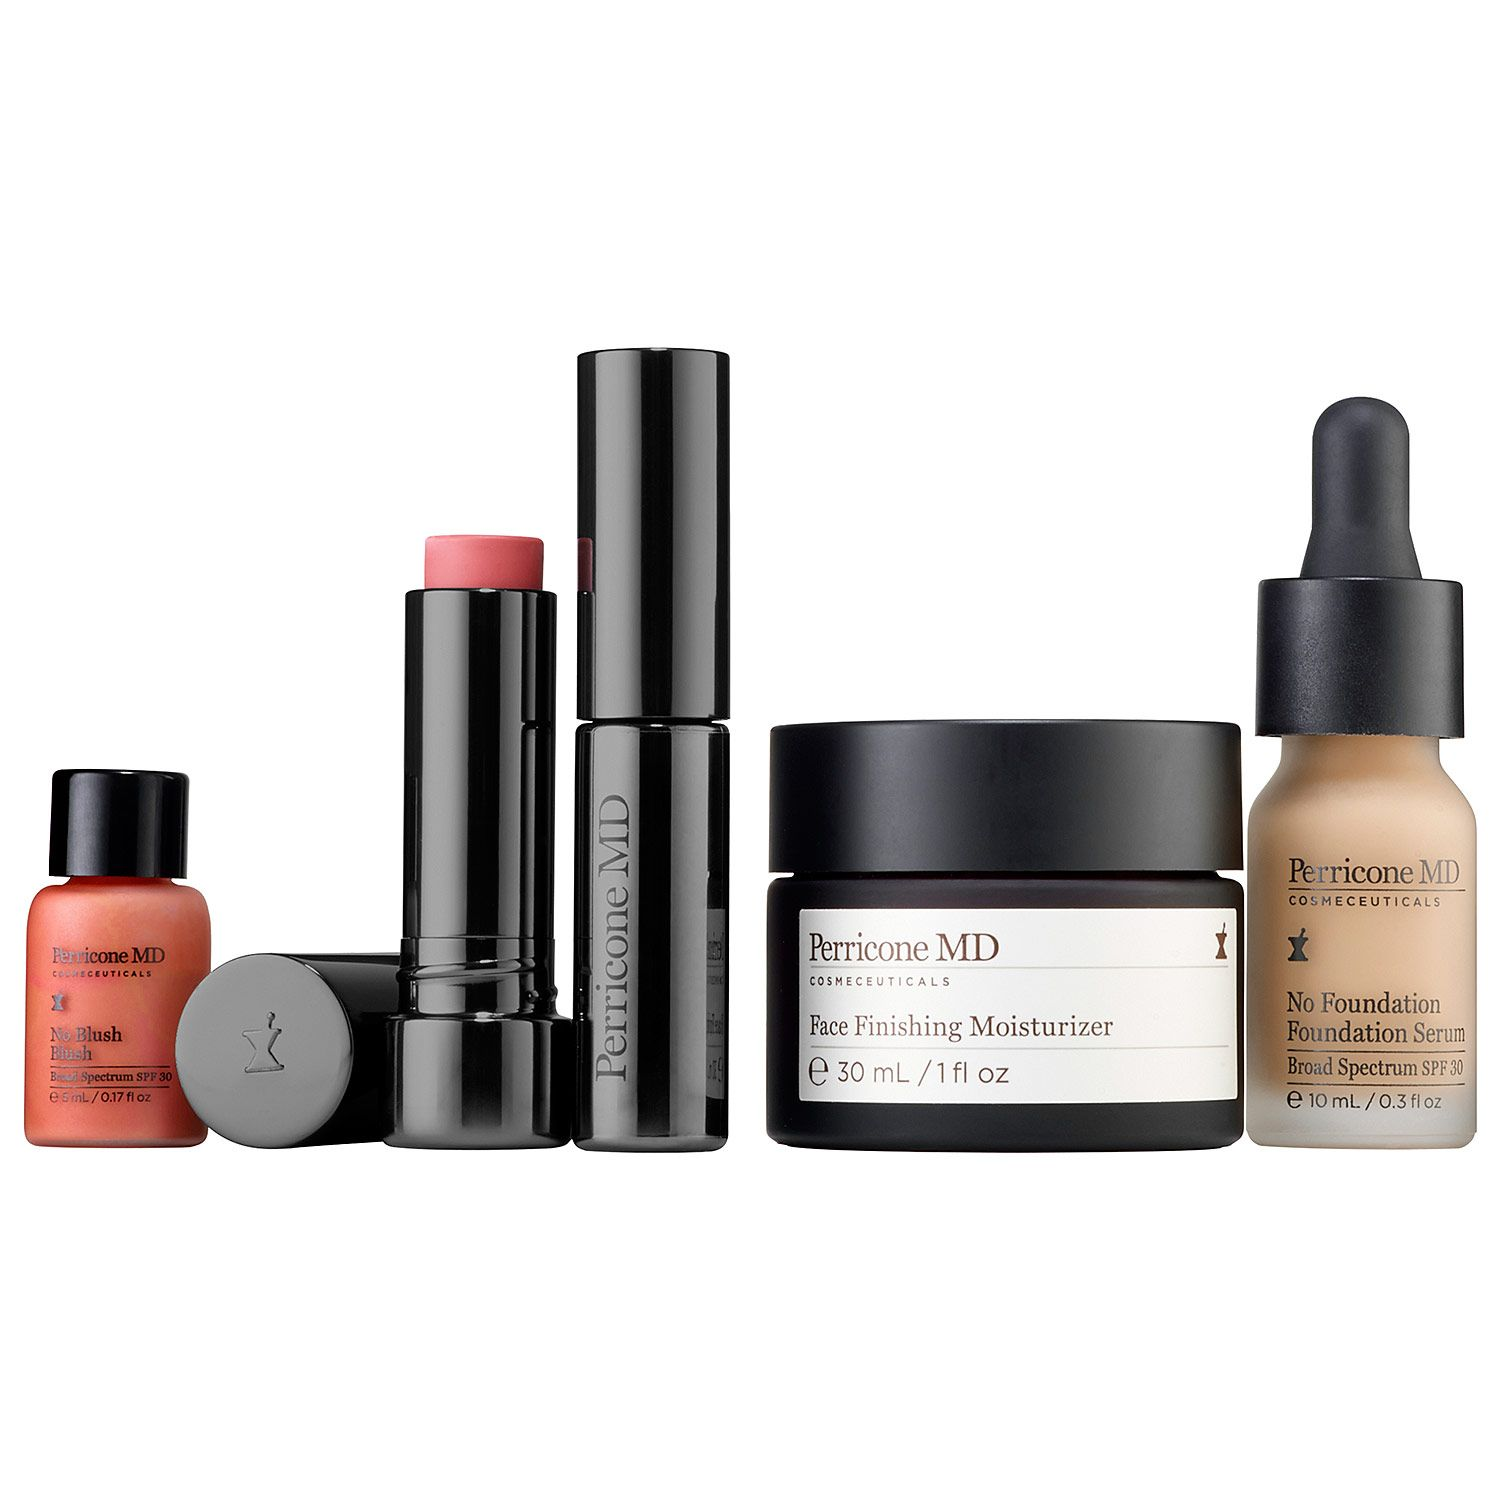 Perricone MD No Makeup Set A collection of products